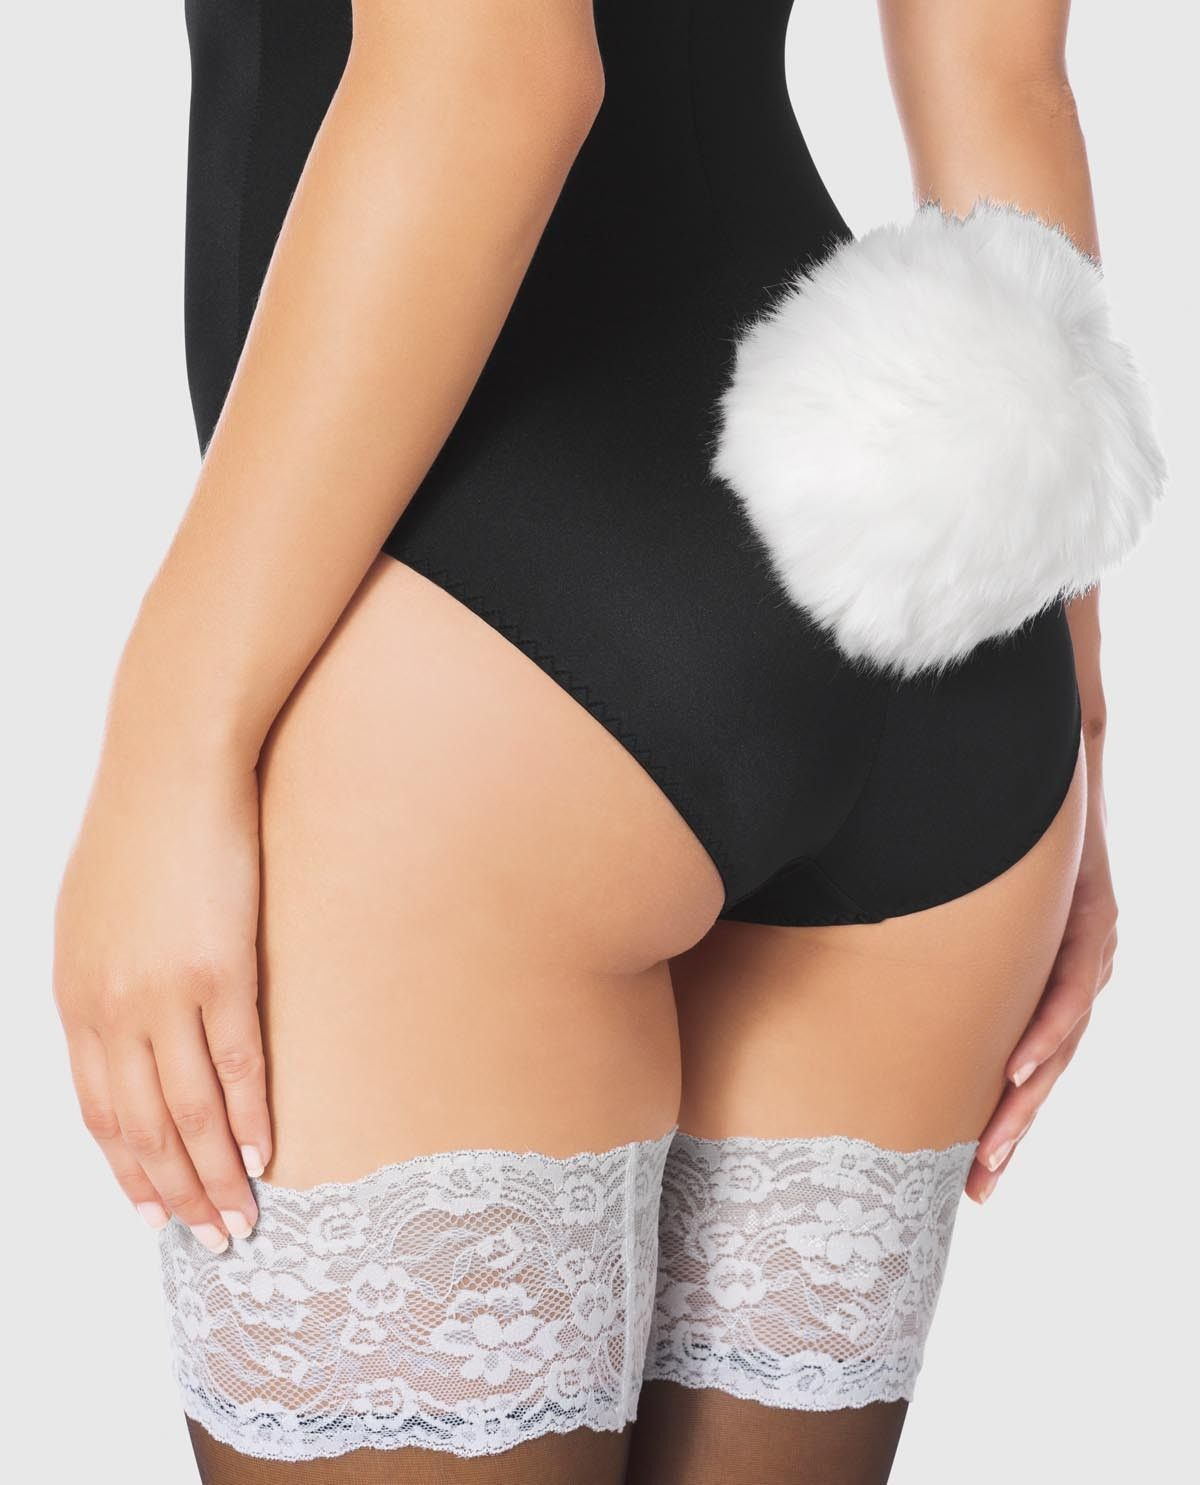 6578b634a5586 This bunny accessory is the perfect addition to your sexy costume. Soft    fuzzy